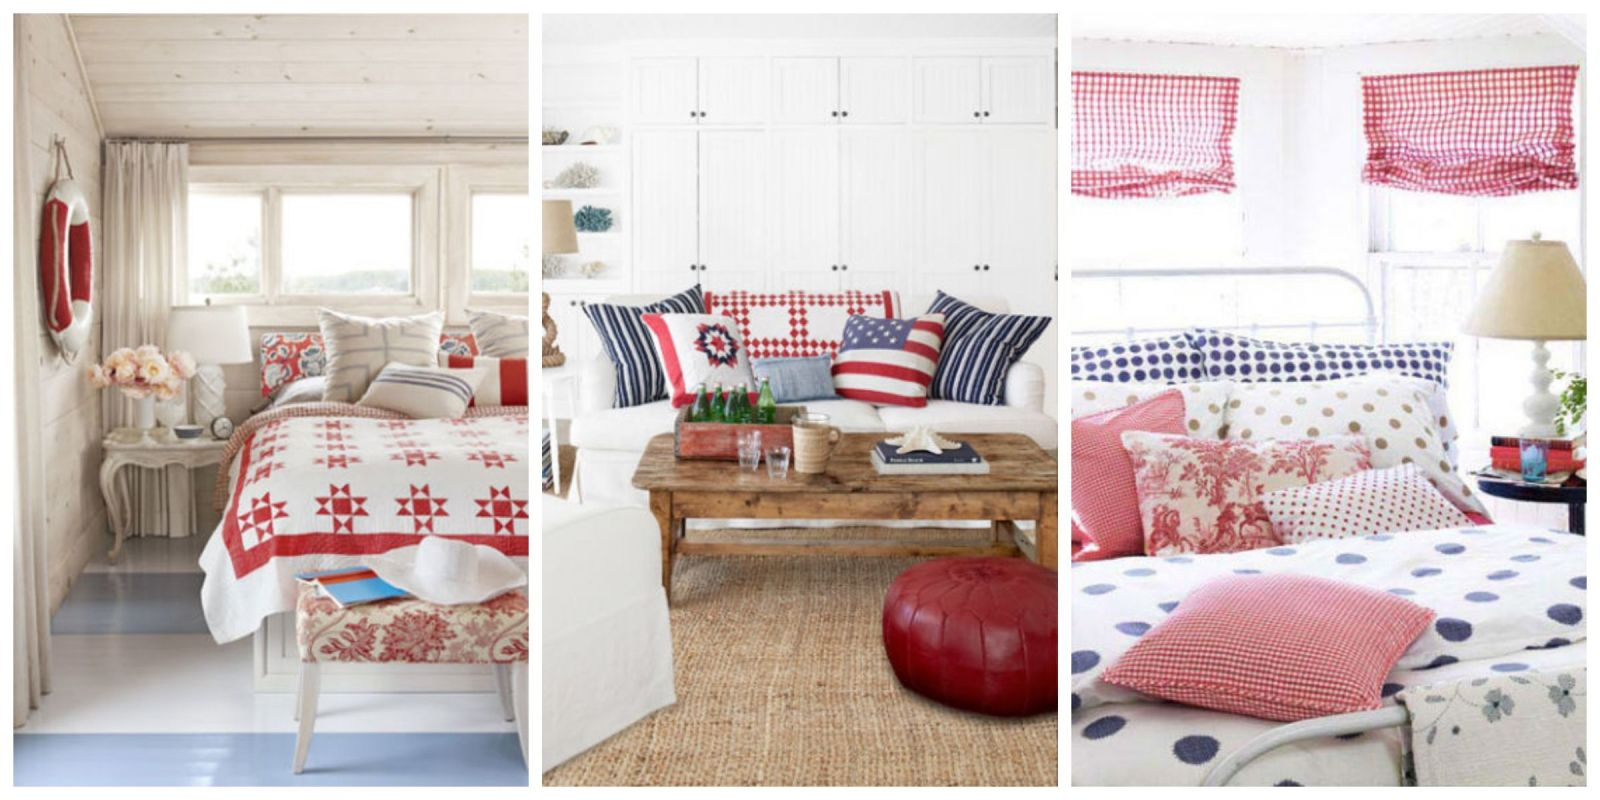 Patriotic Decor - 4th of July Red White and Blue Decorating Ideas